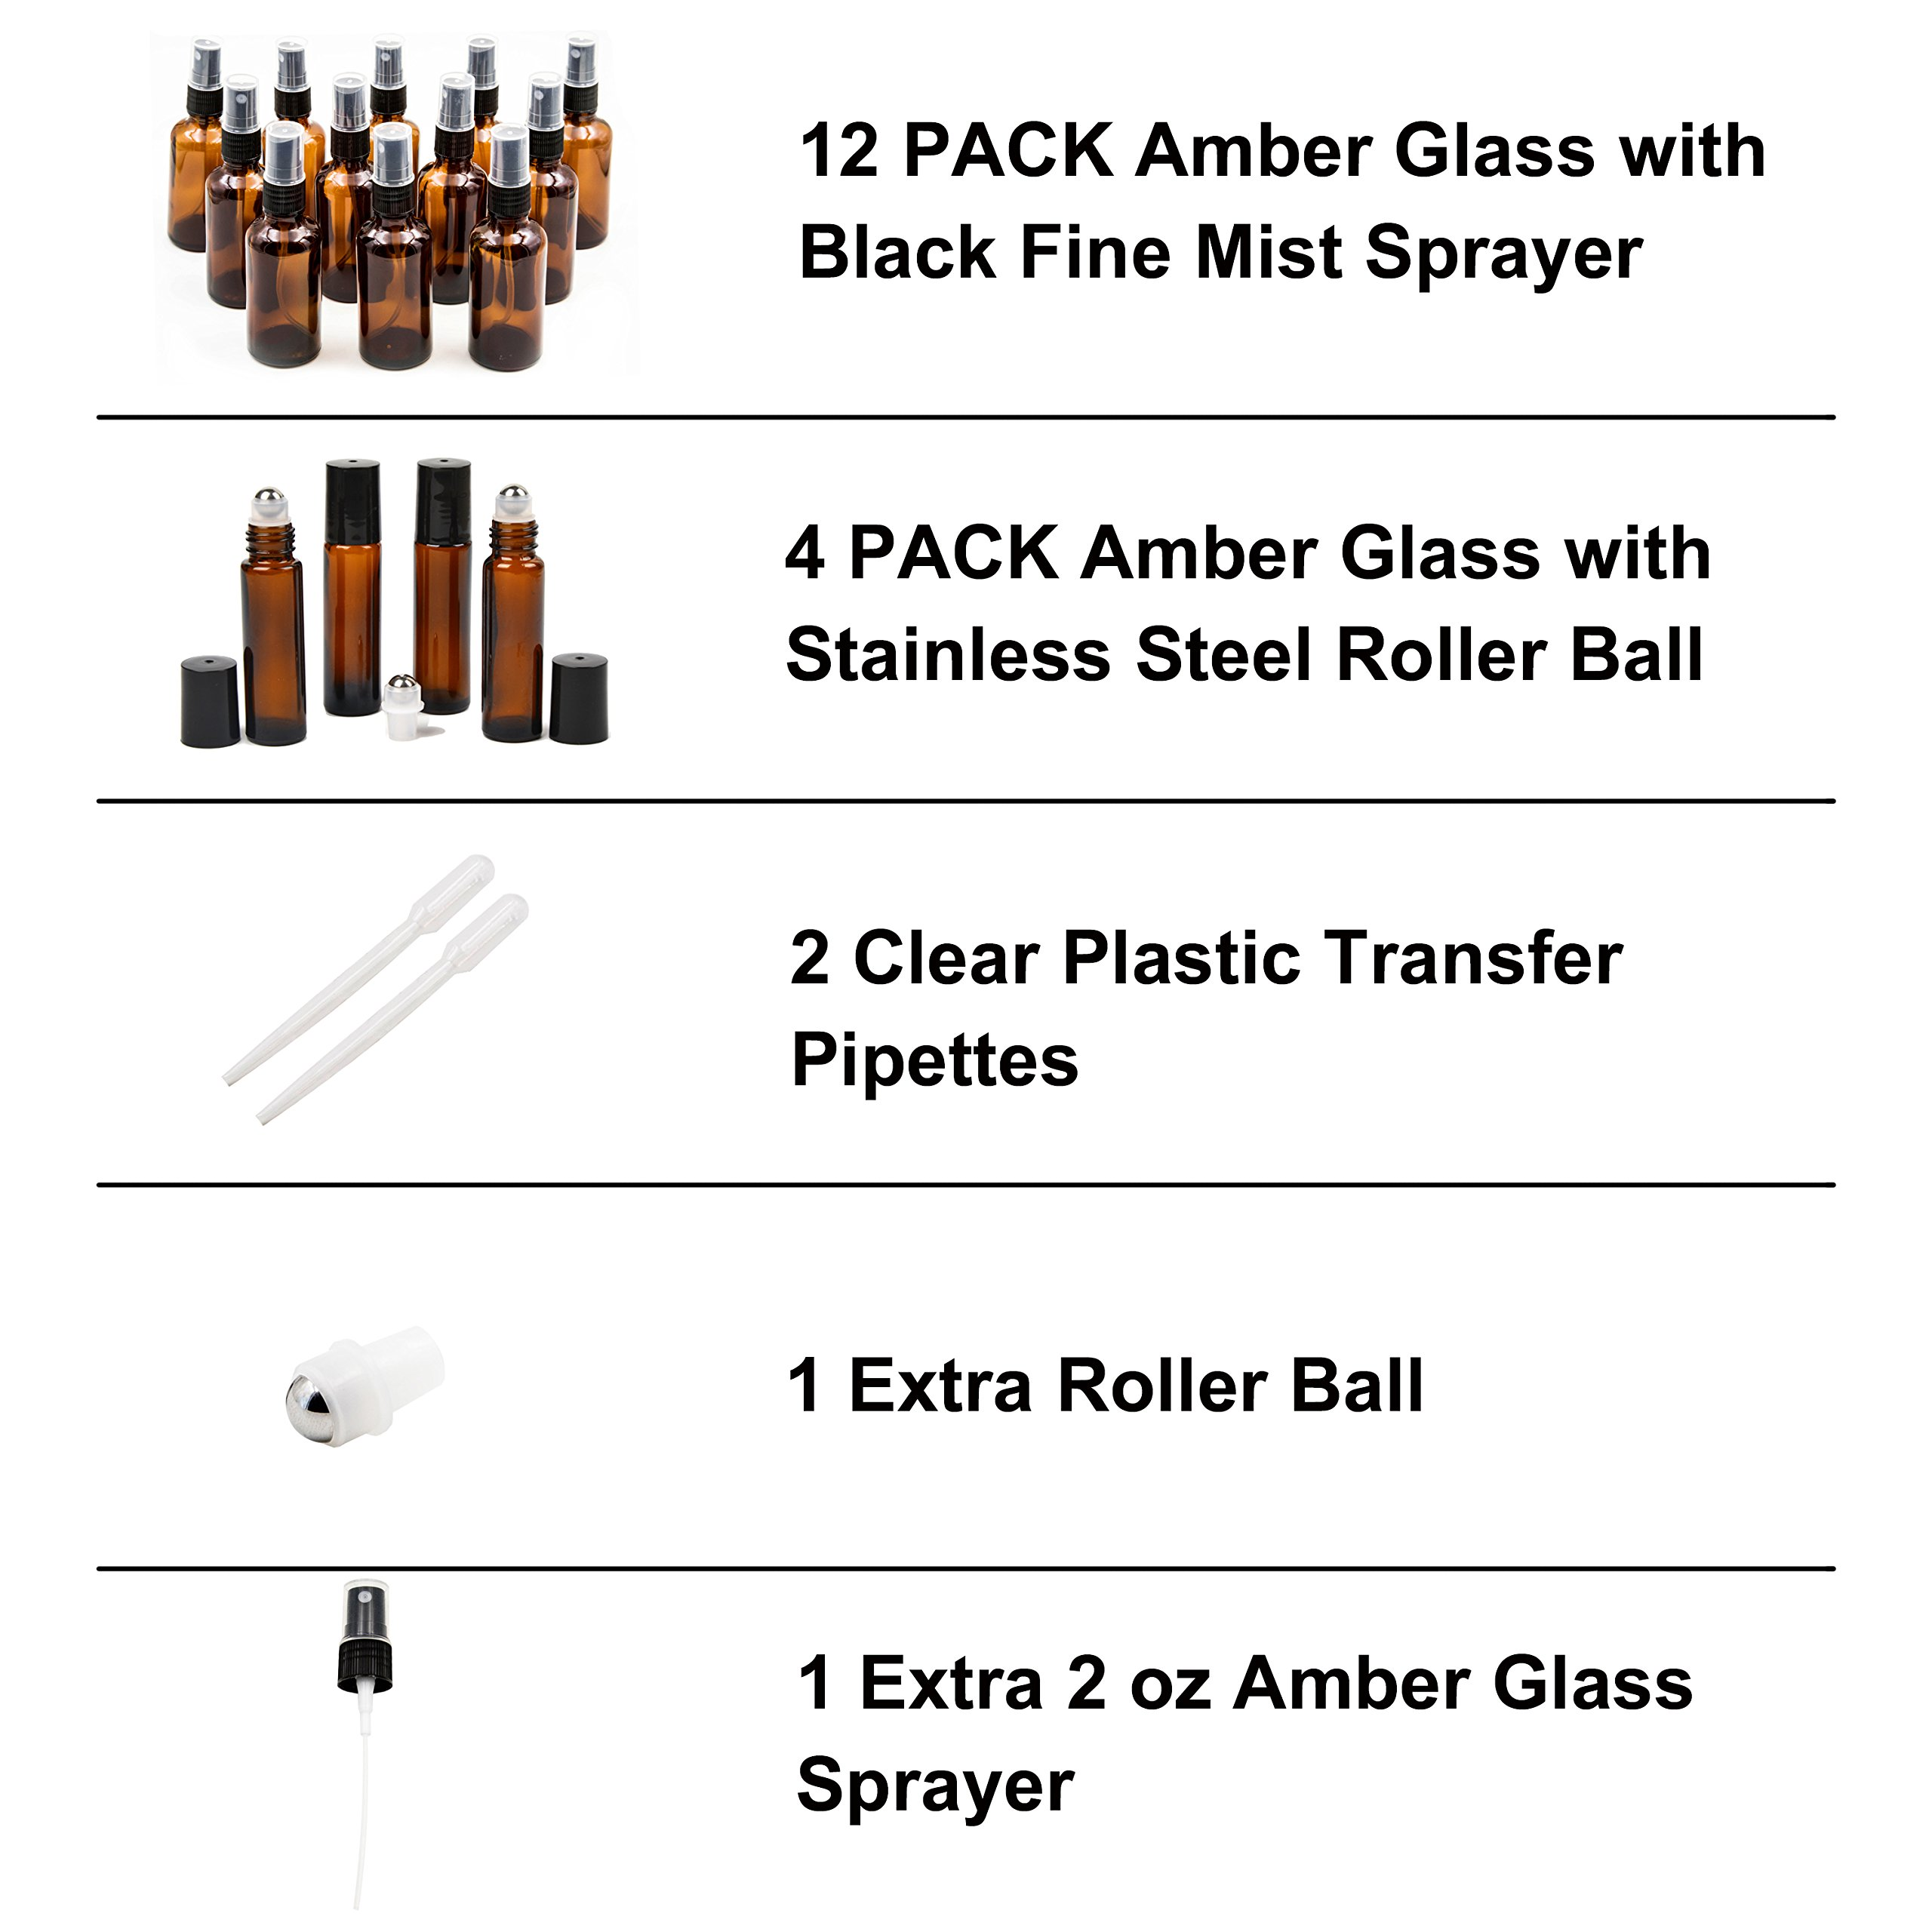 16 Pack Essential Oil Glass Bottles, 12 Black Fine Mist Amber Glass Spray Bottles (2OZ), 4 Amber Stainless Steel Roller Bottles (0.34OZ), 2 Clear Plastic Transfer Pipettes by Youngever (Image #2)